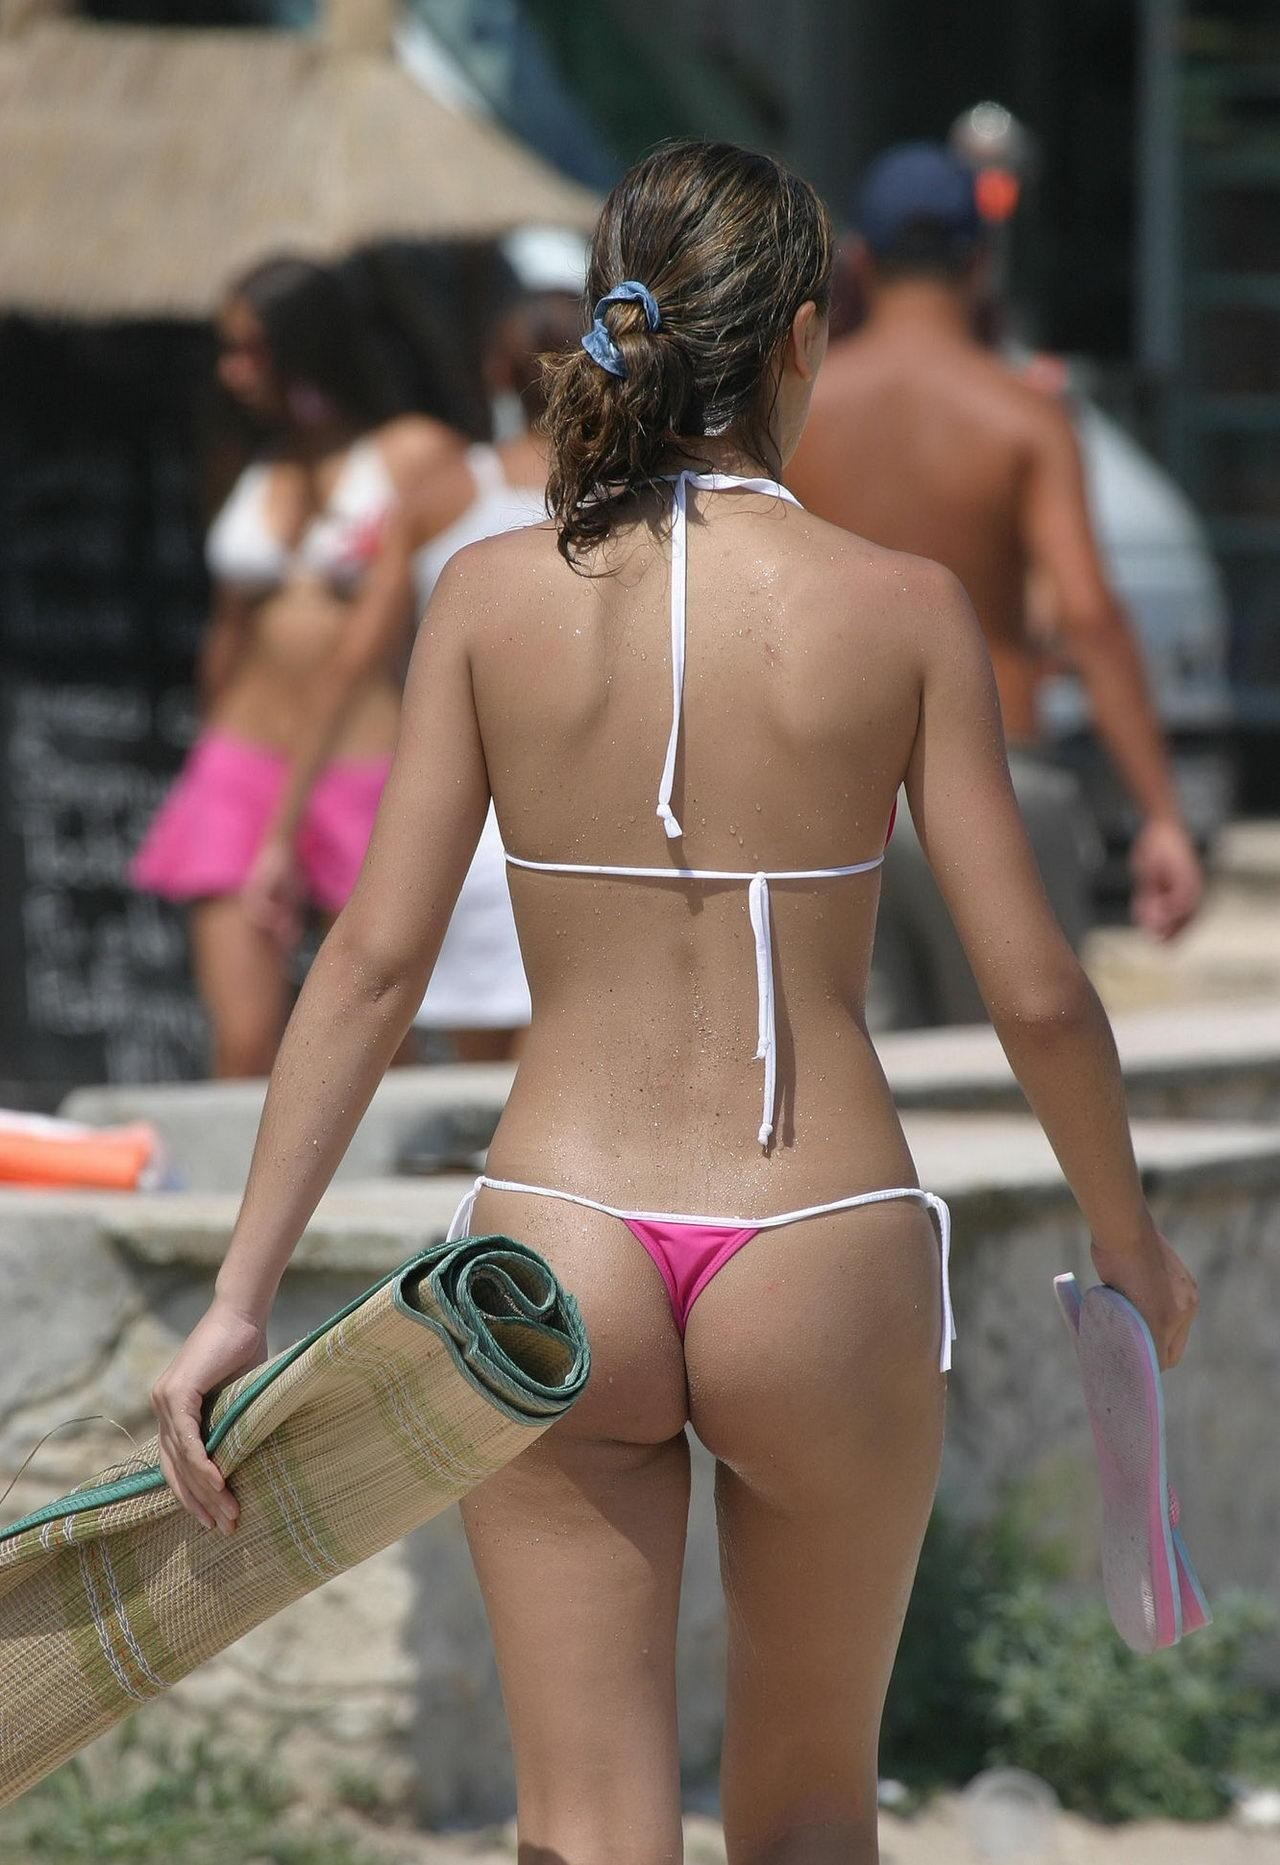 Bikini clad babe constantly looking for the right sunbathing spot